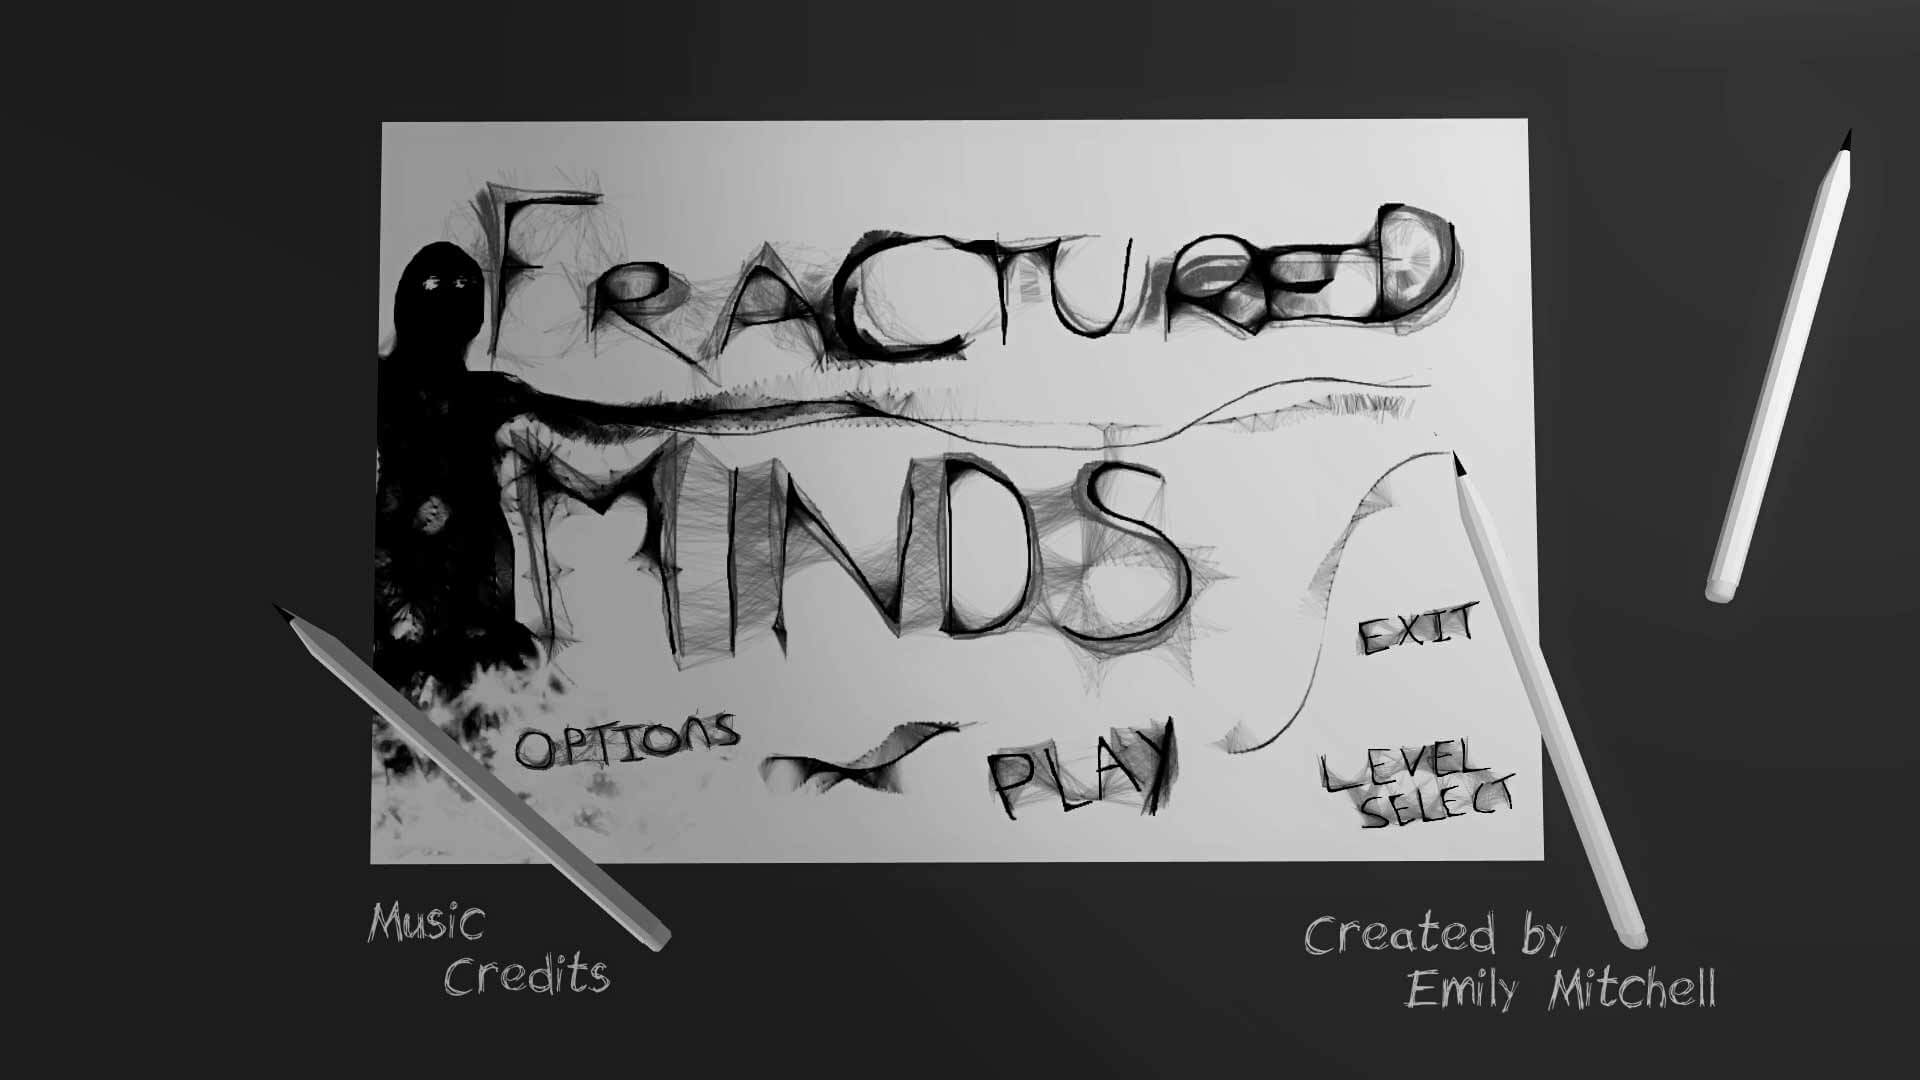 Fractured Minds | ROW (fb4ebd2a-51c7-4435-8fda-6df539fdb1d3)